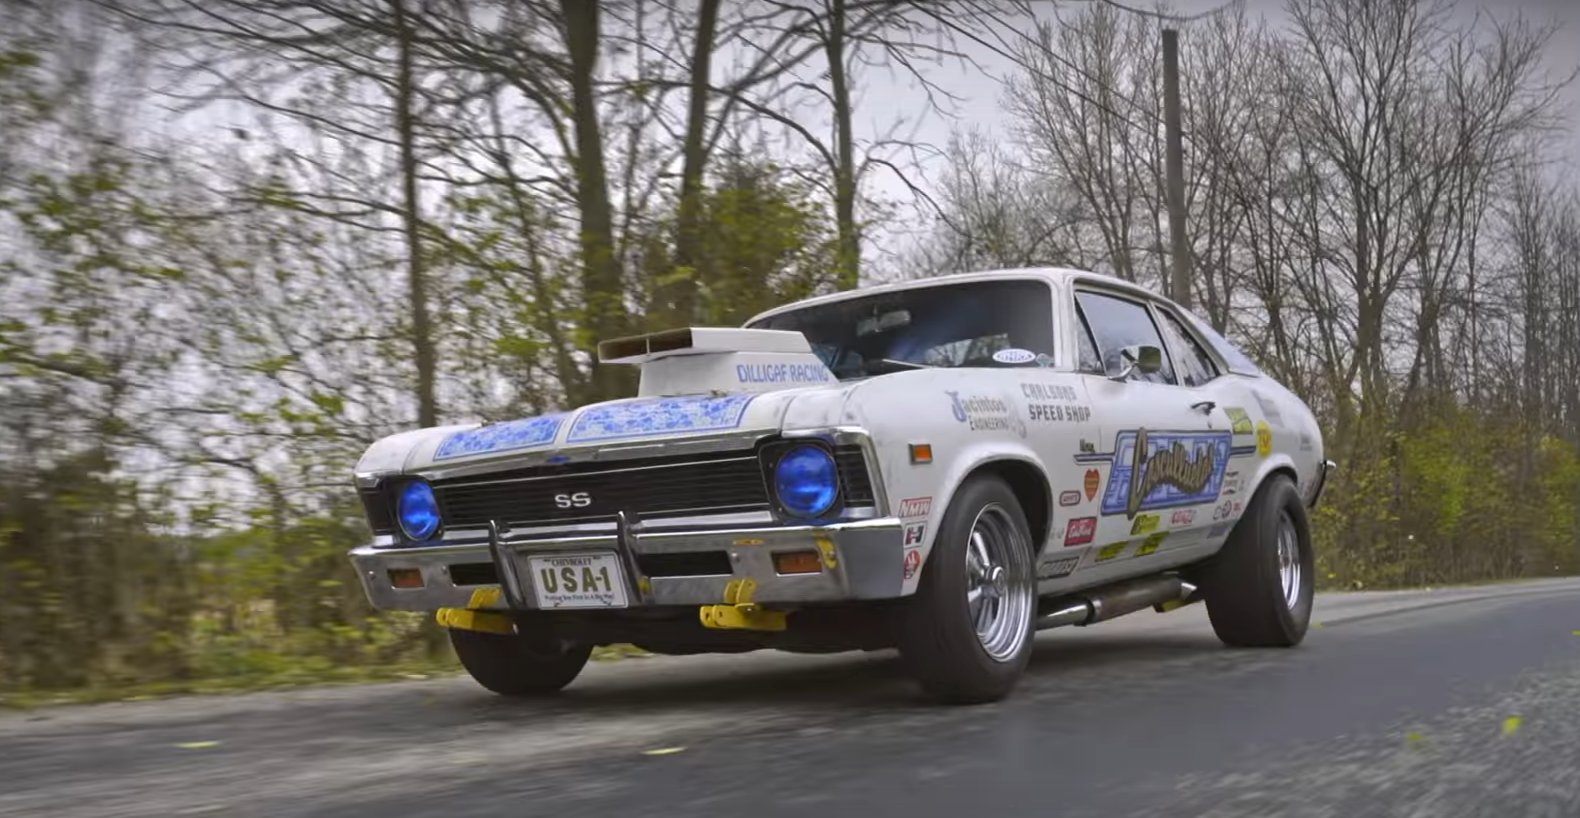 Ohio Street Freak - Ep. 4 - There is always that one experience for every budding car enthusiast that leaves an impression. For Mike Cosculluela, it was a Chevrolet Nova.